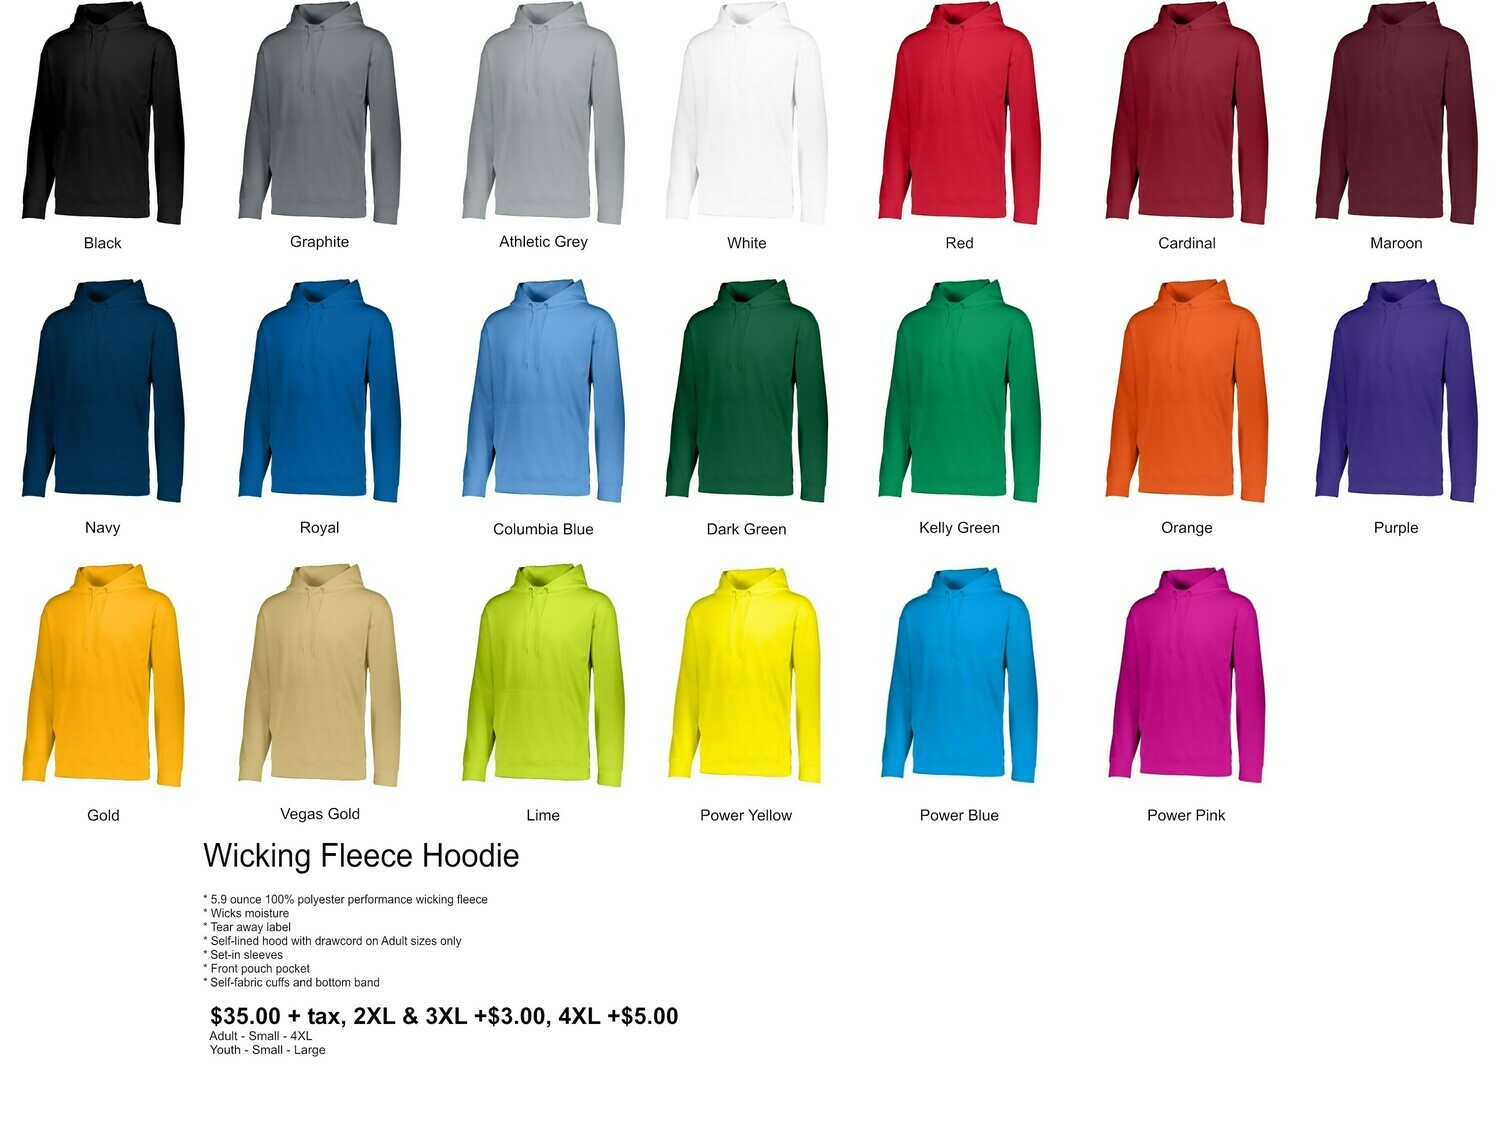 Wicking Fleece Hoodie